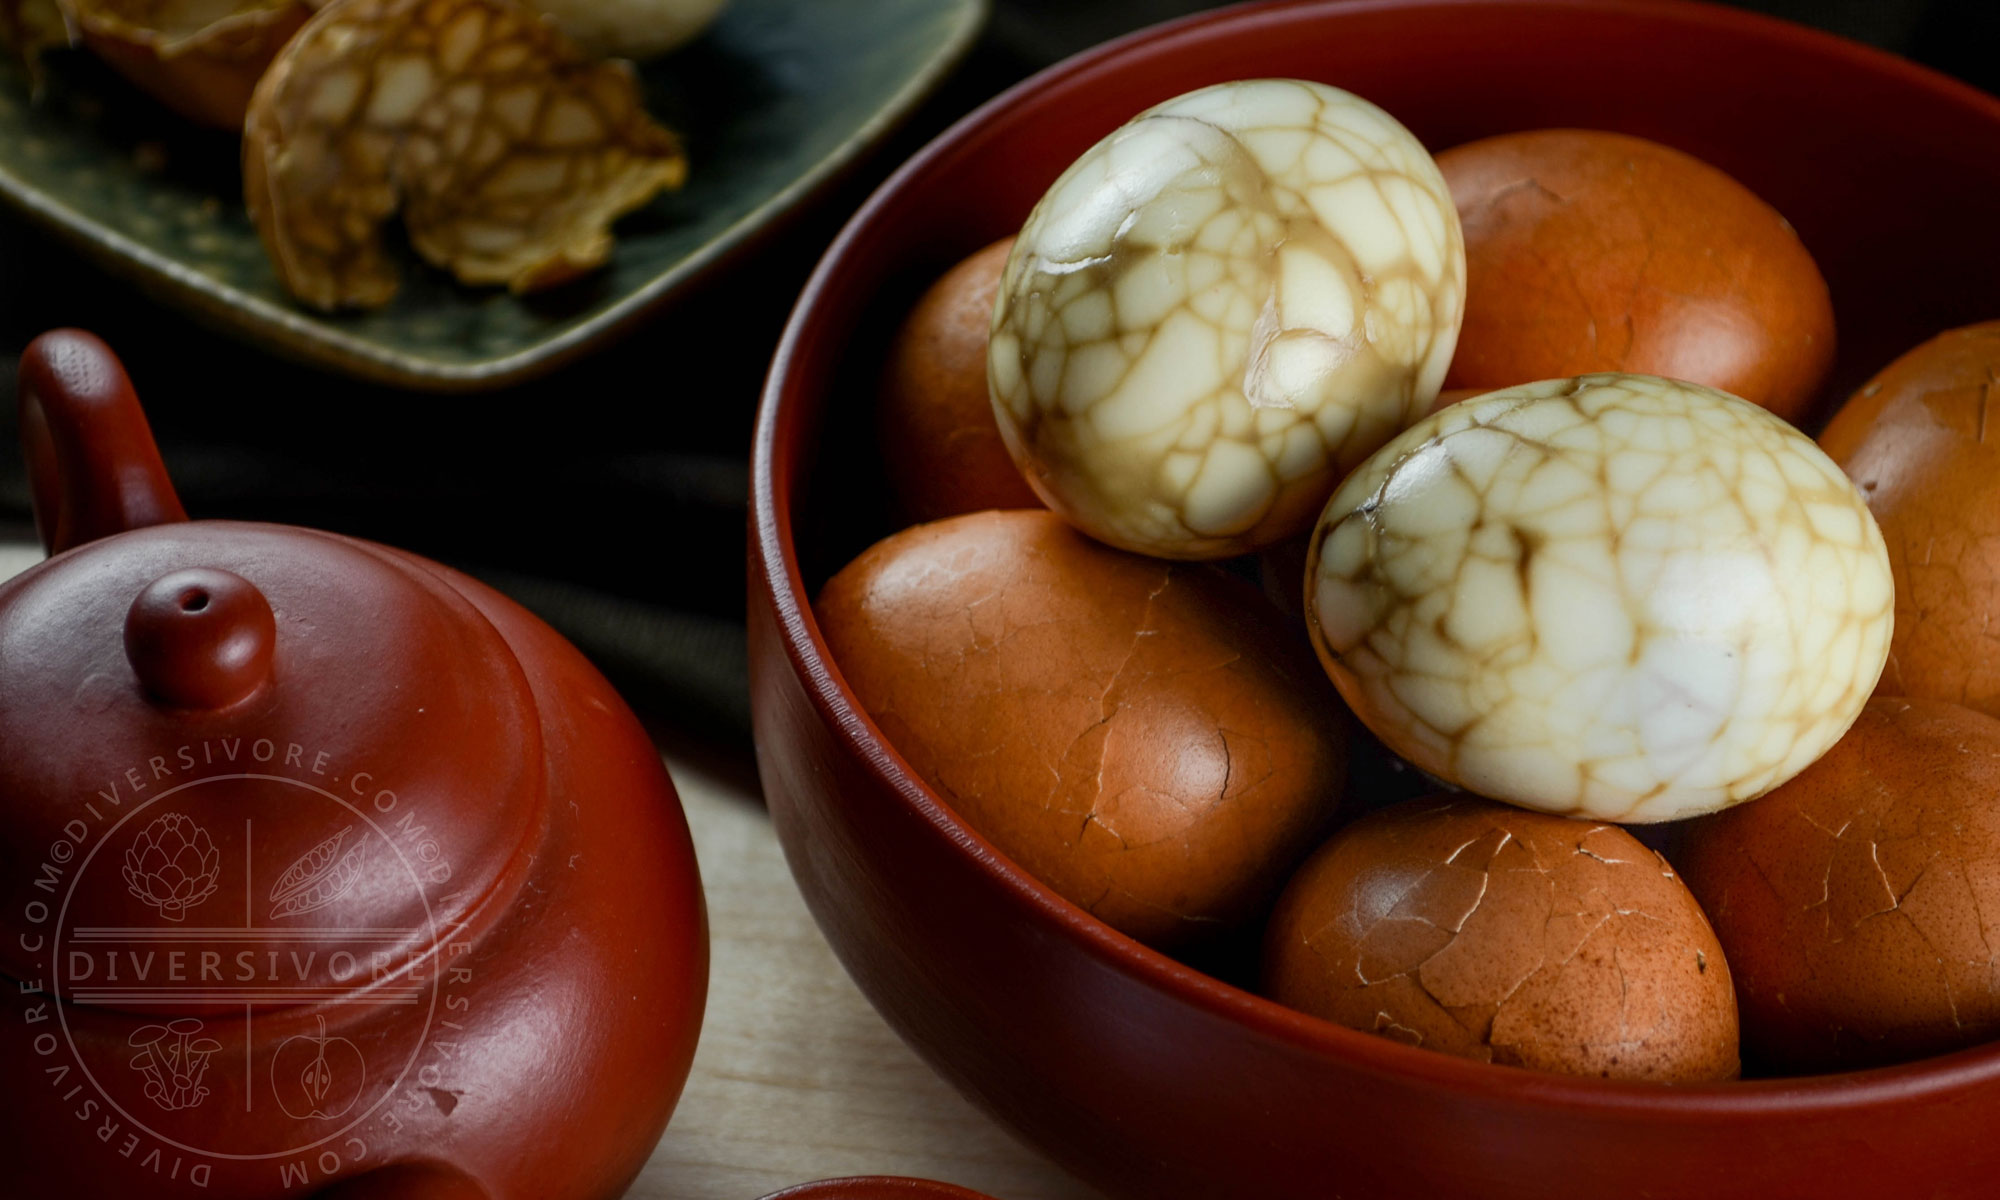 Taiwanese Tea Eggs - Hard boiled eggs steeped in Taiwanese tea and a mixture of spices - Diversivore.com